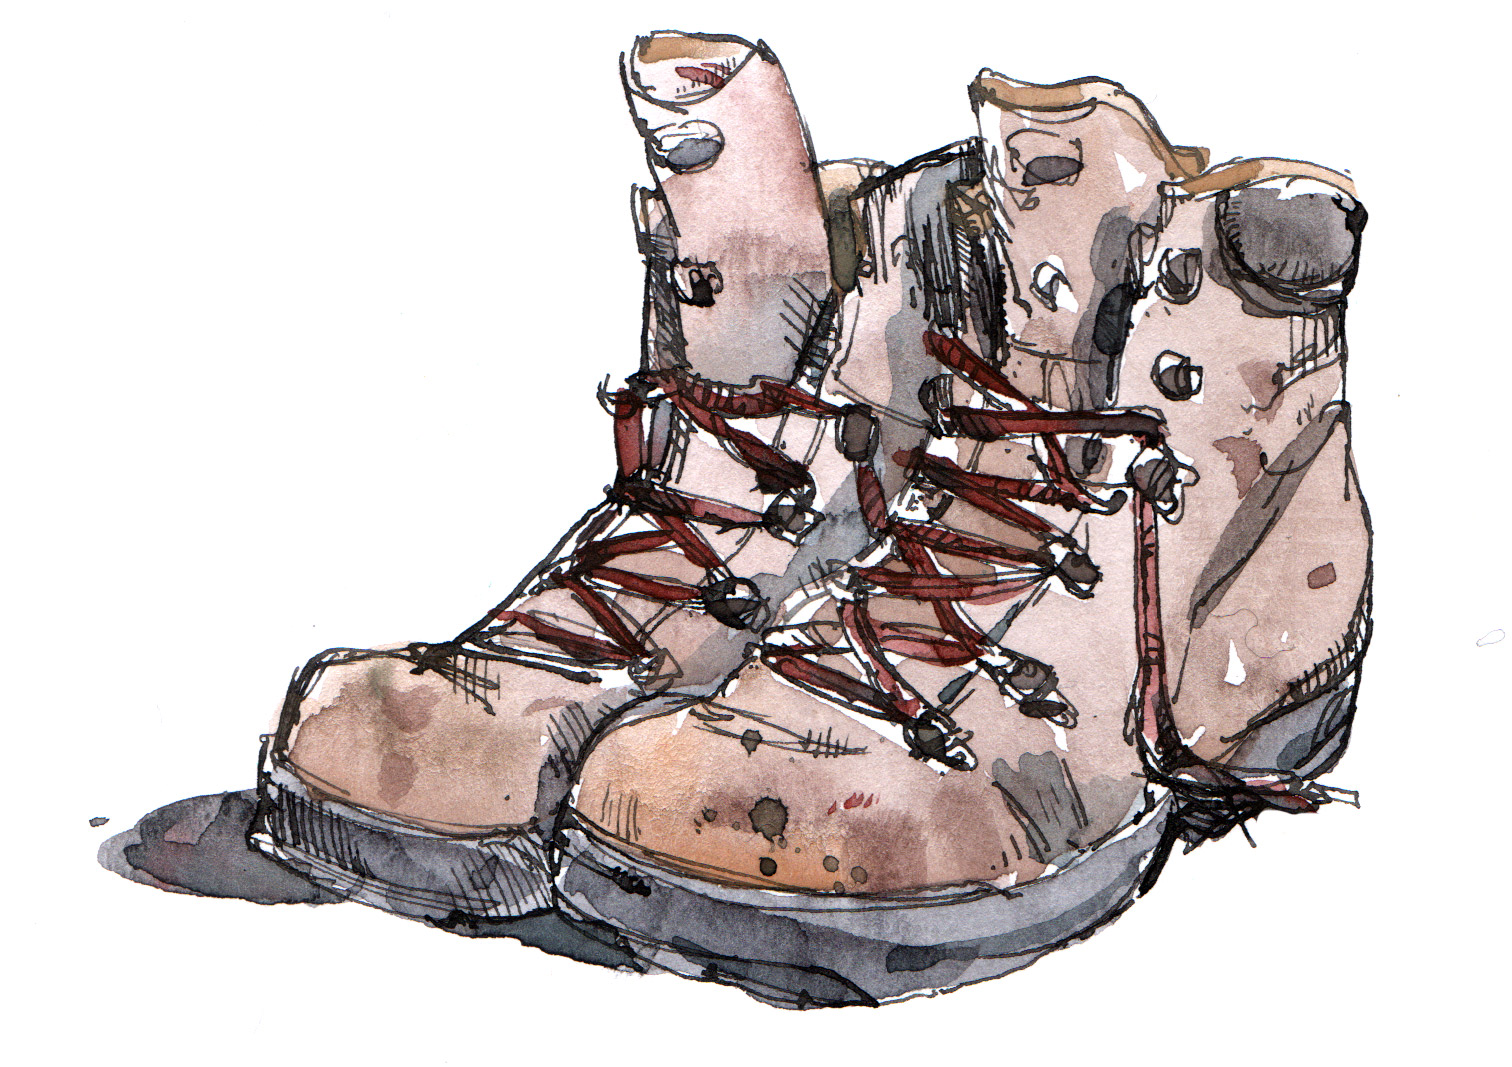 1512x1067 Walking Boots Iain Welch Art And Design